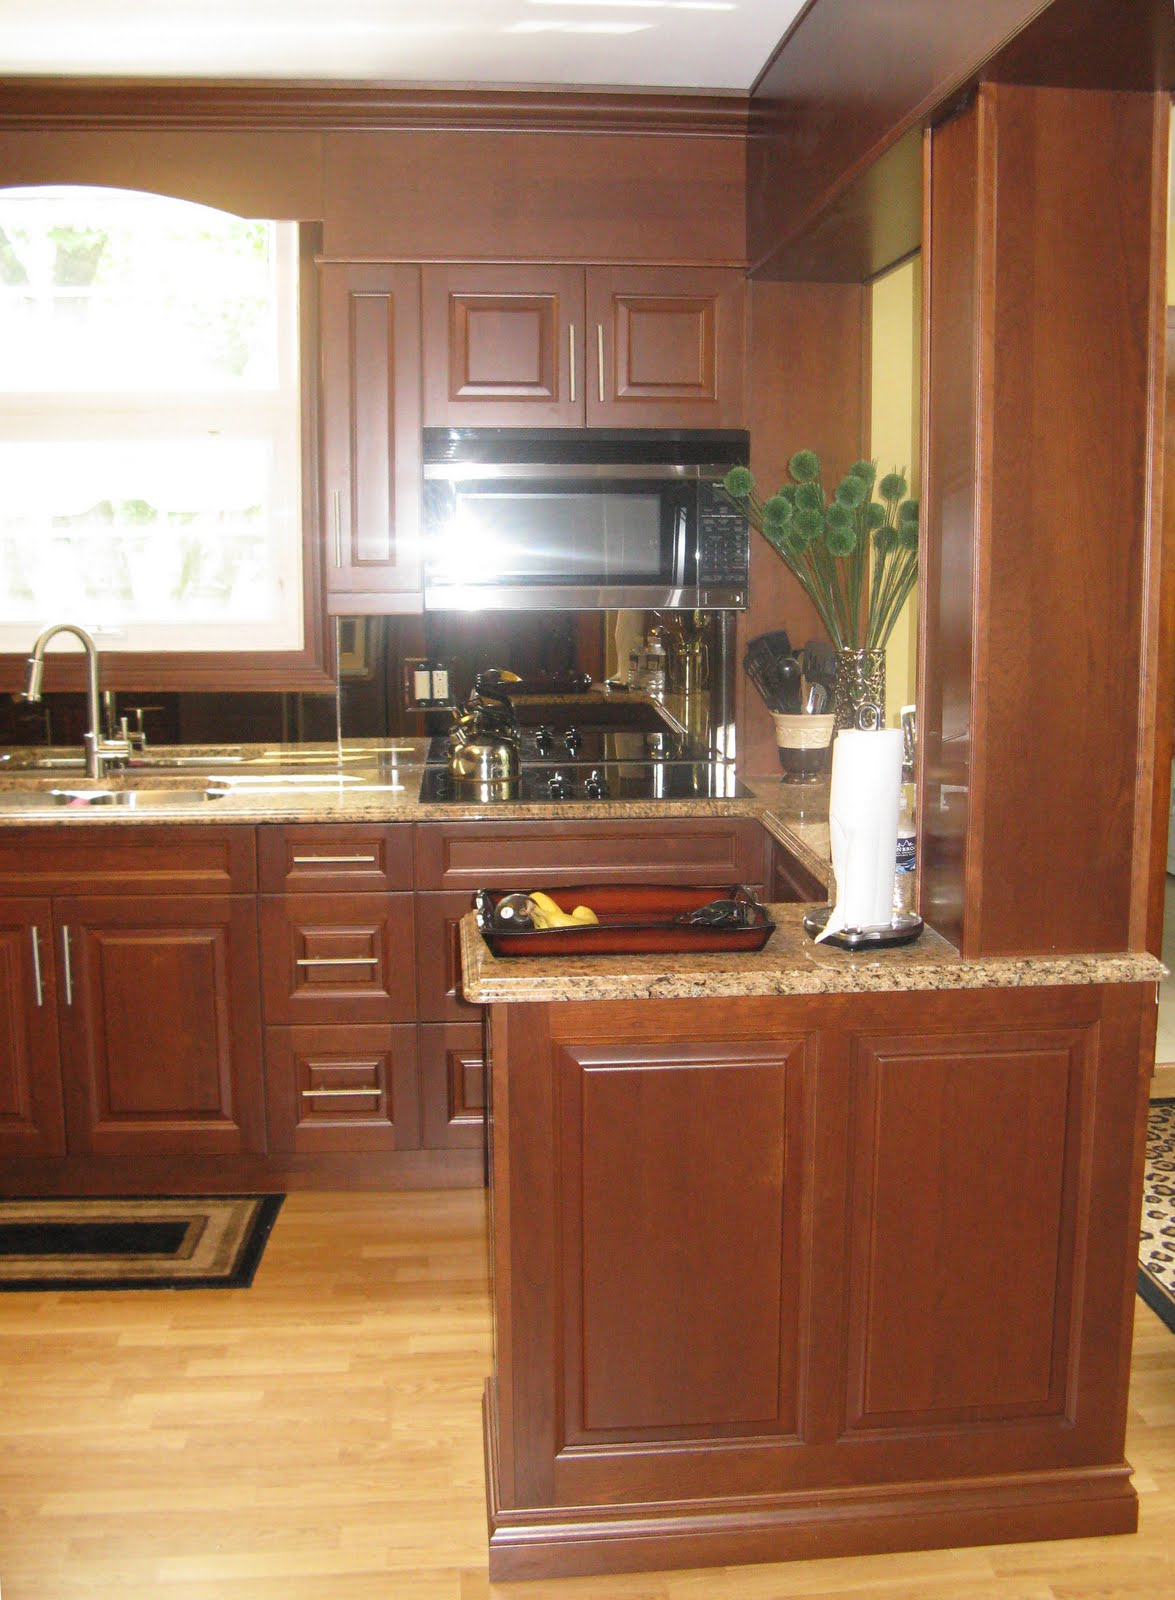 Matching Cherry Cabinets and Countertops